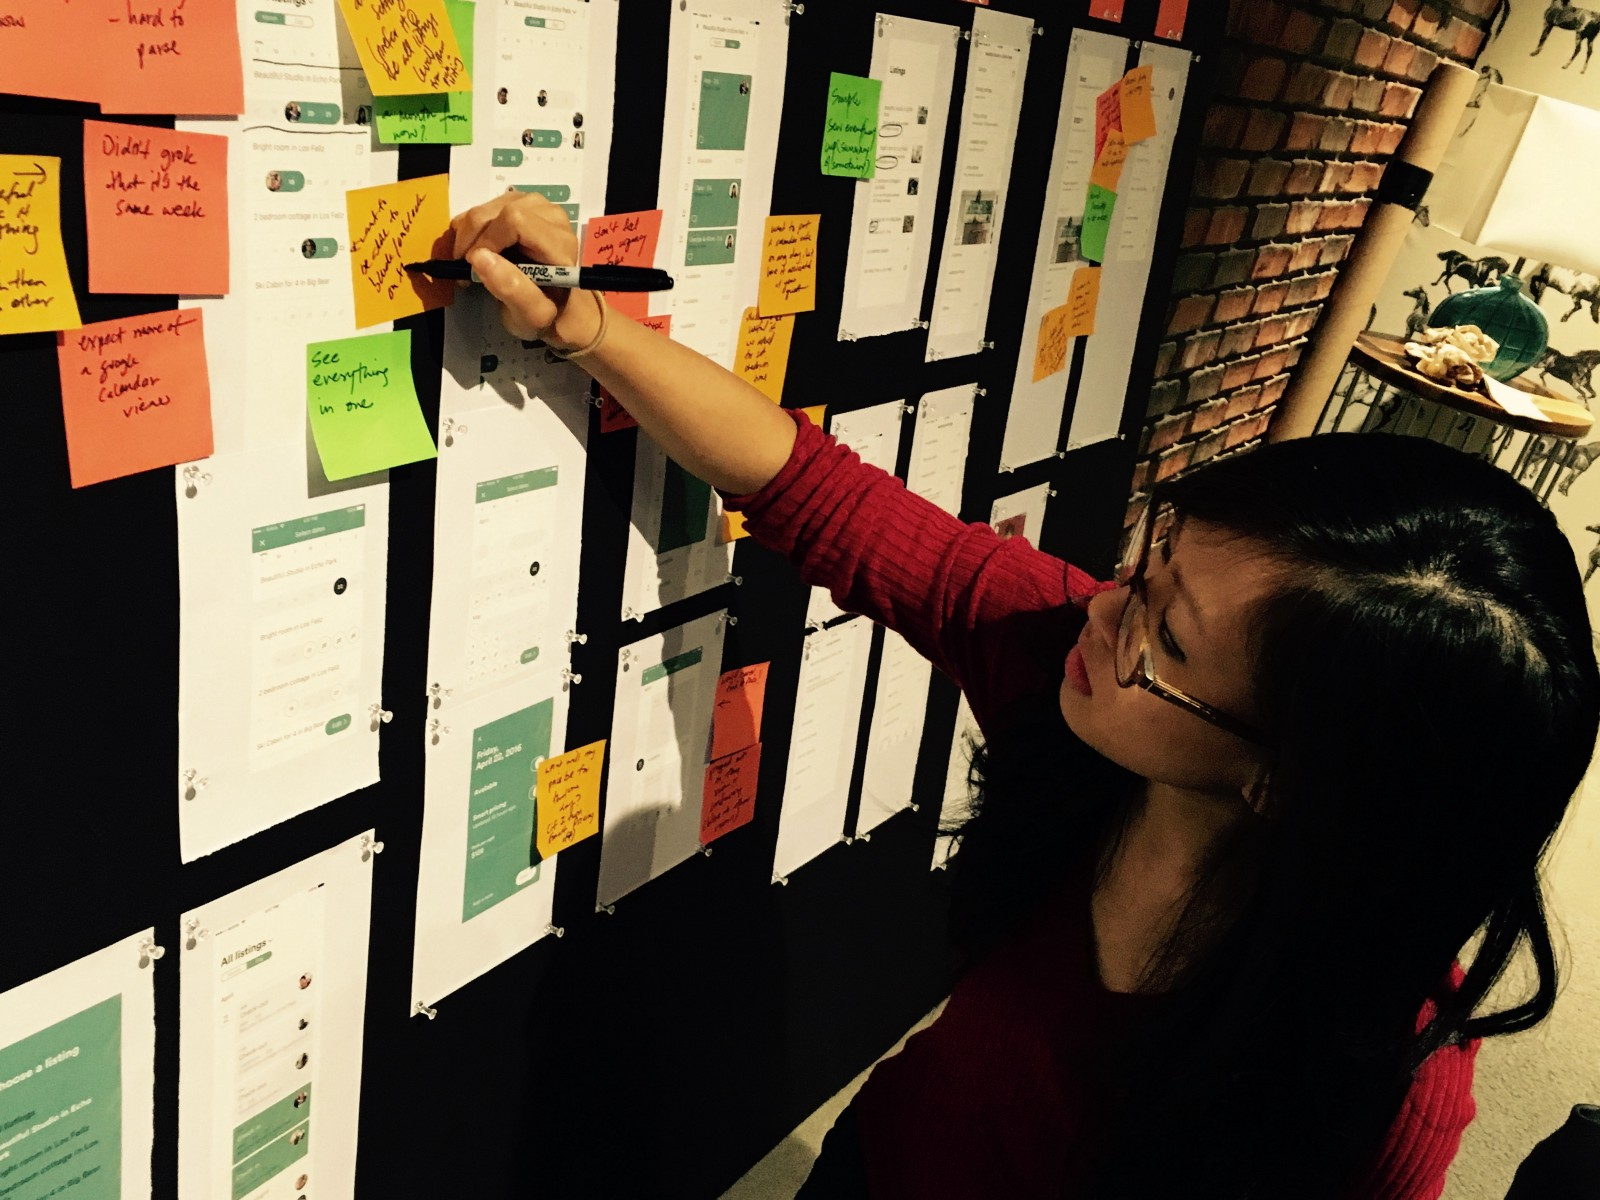 Co-designing with Hosts at Airbnb